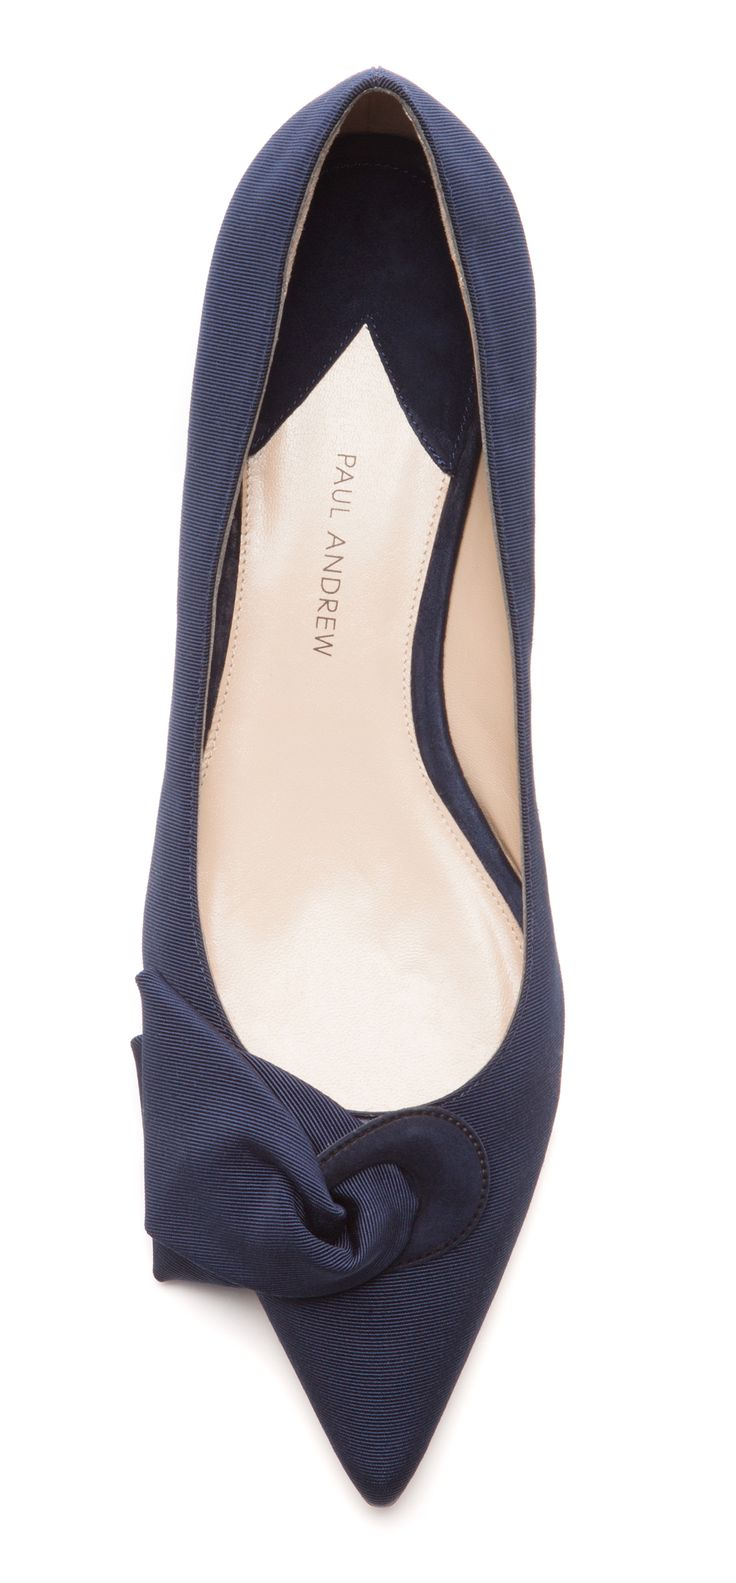 Classic pointed flats